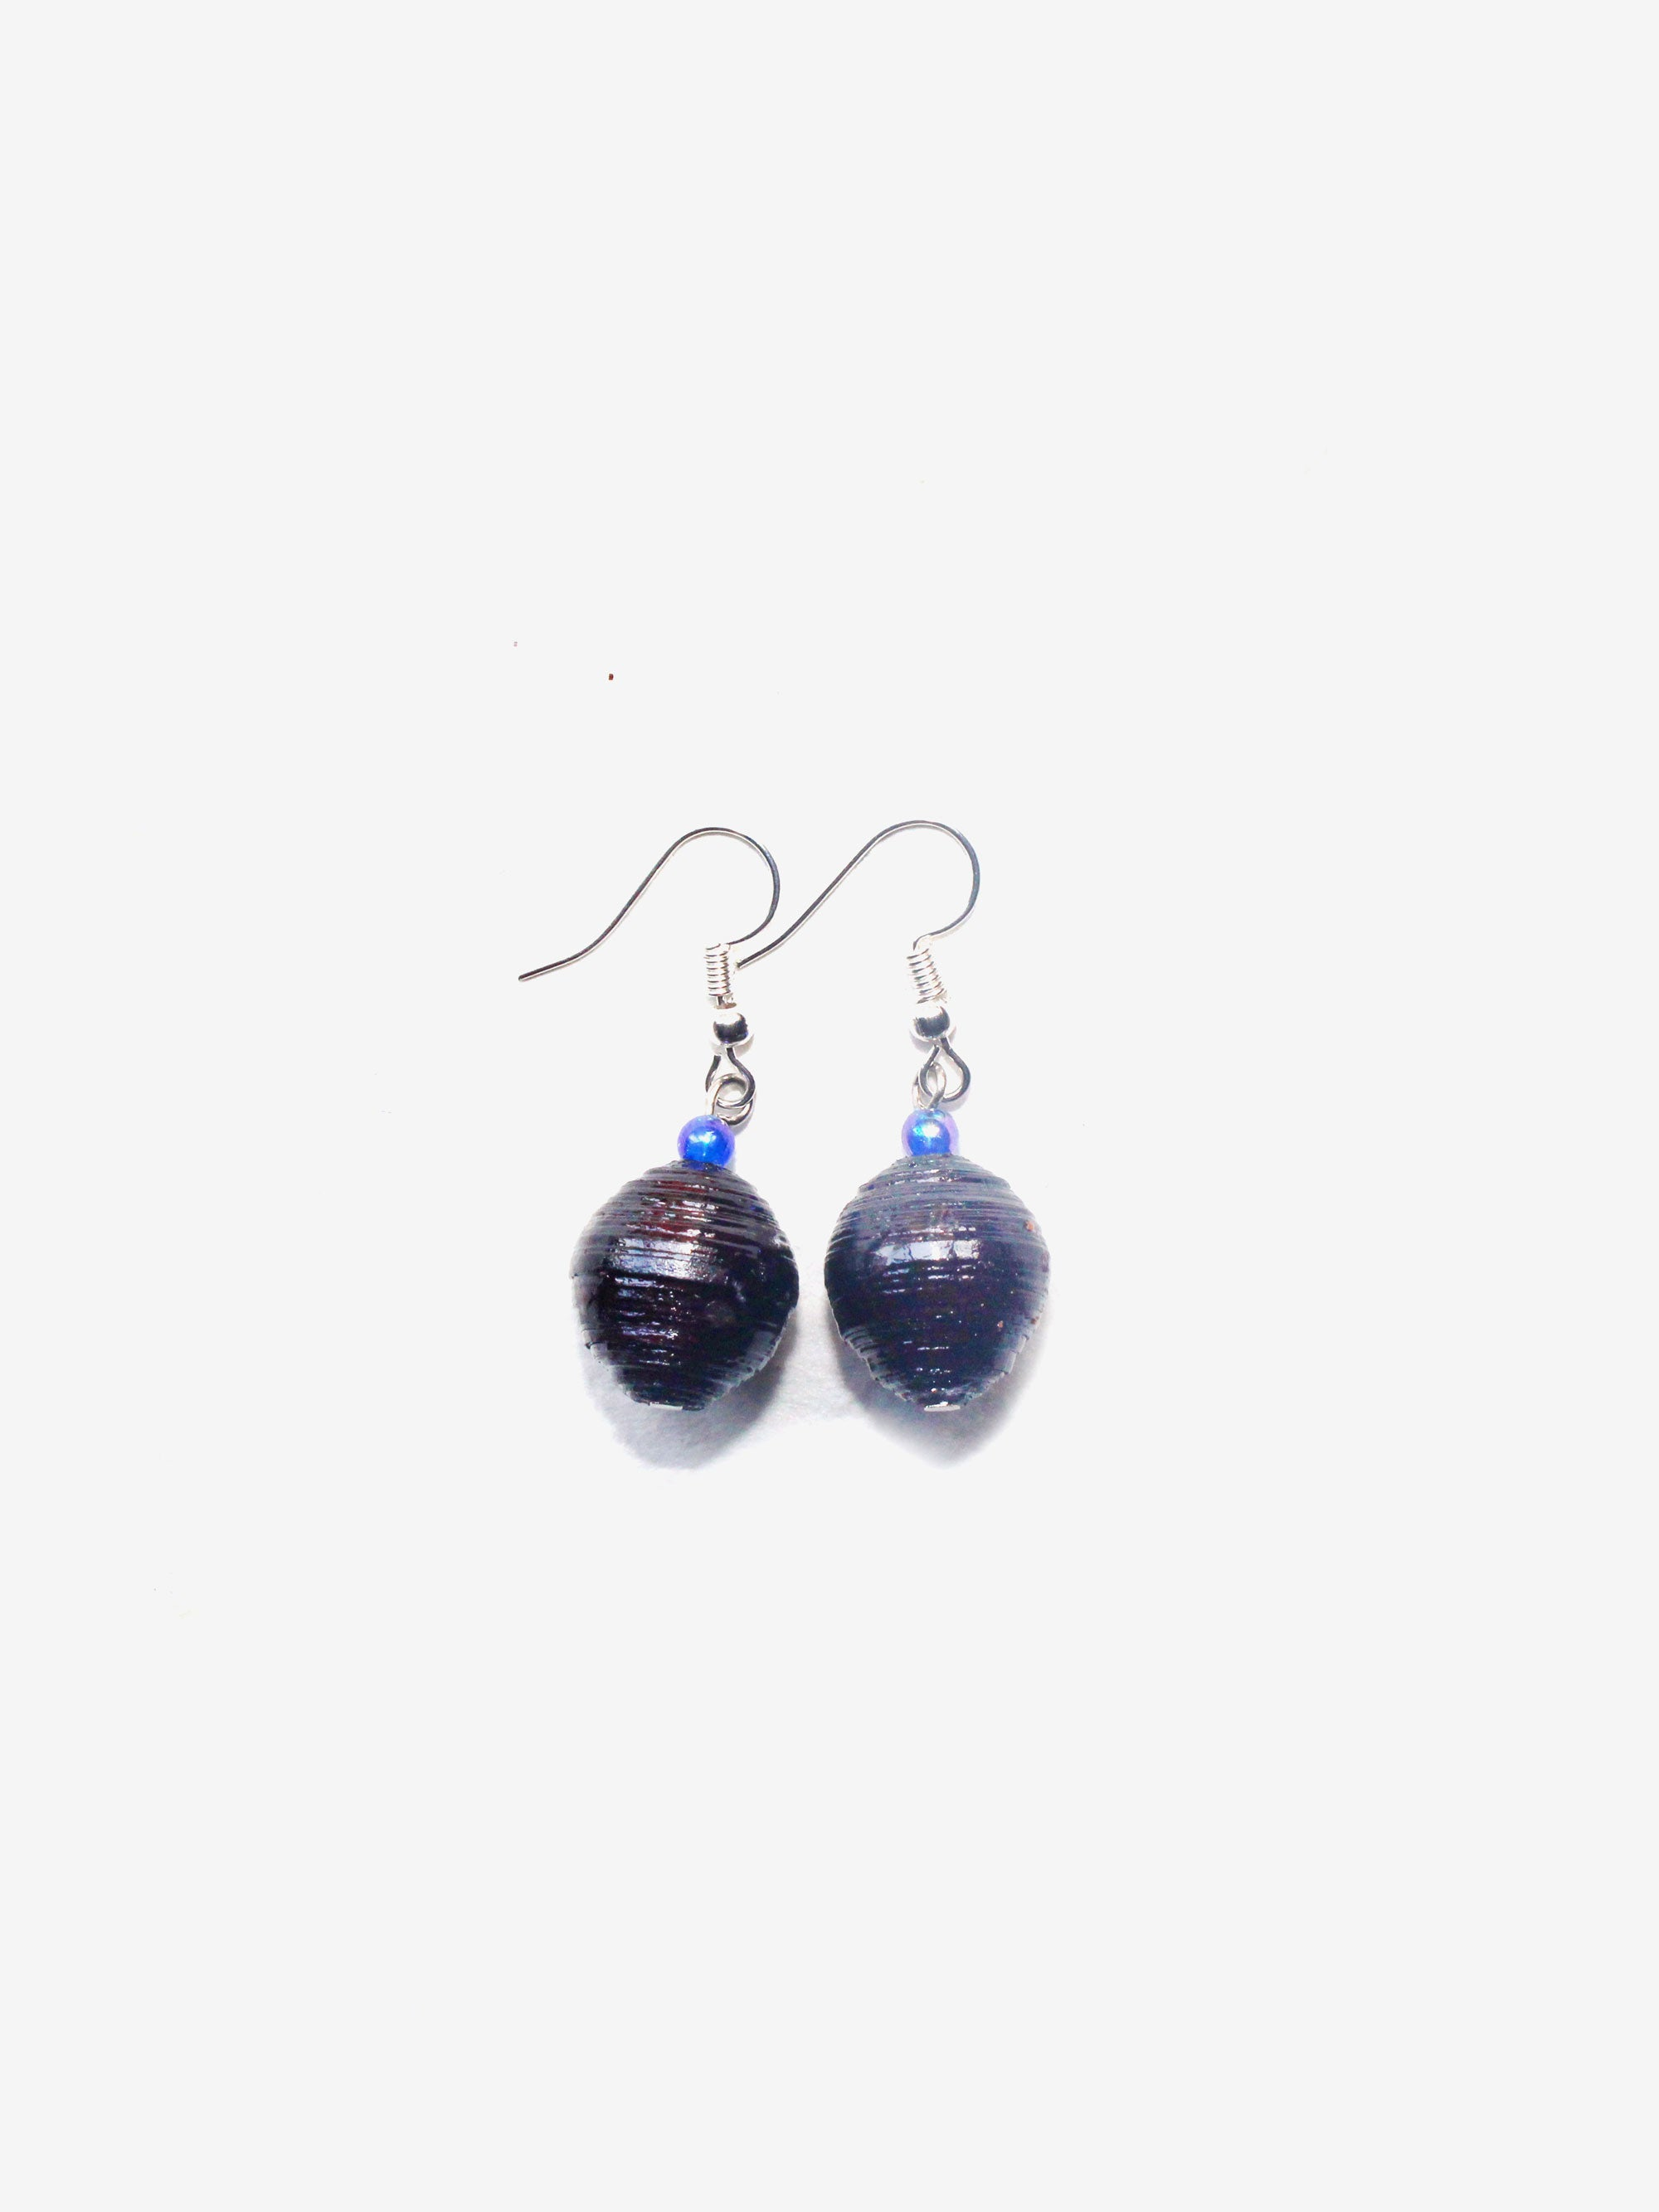 Handcrafted Lao Earrings in Plum